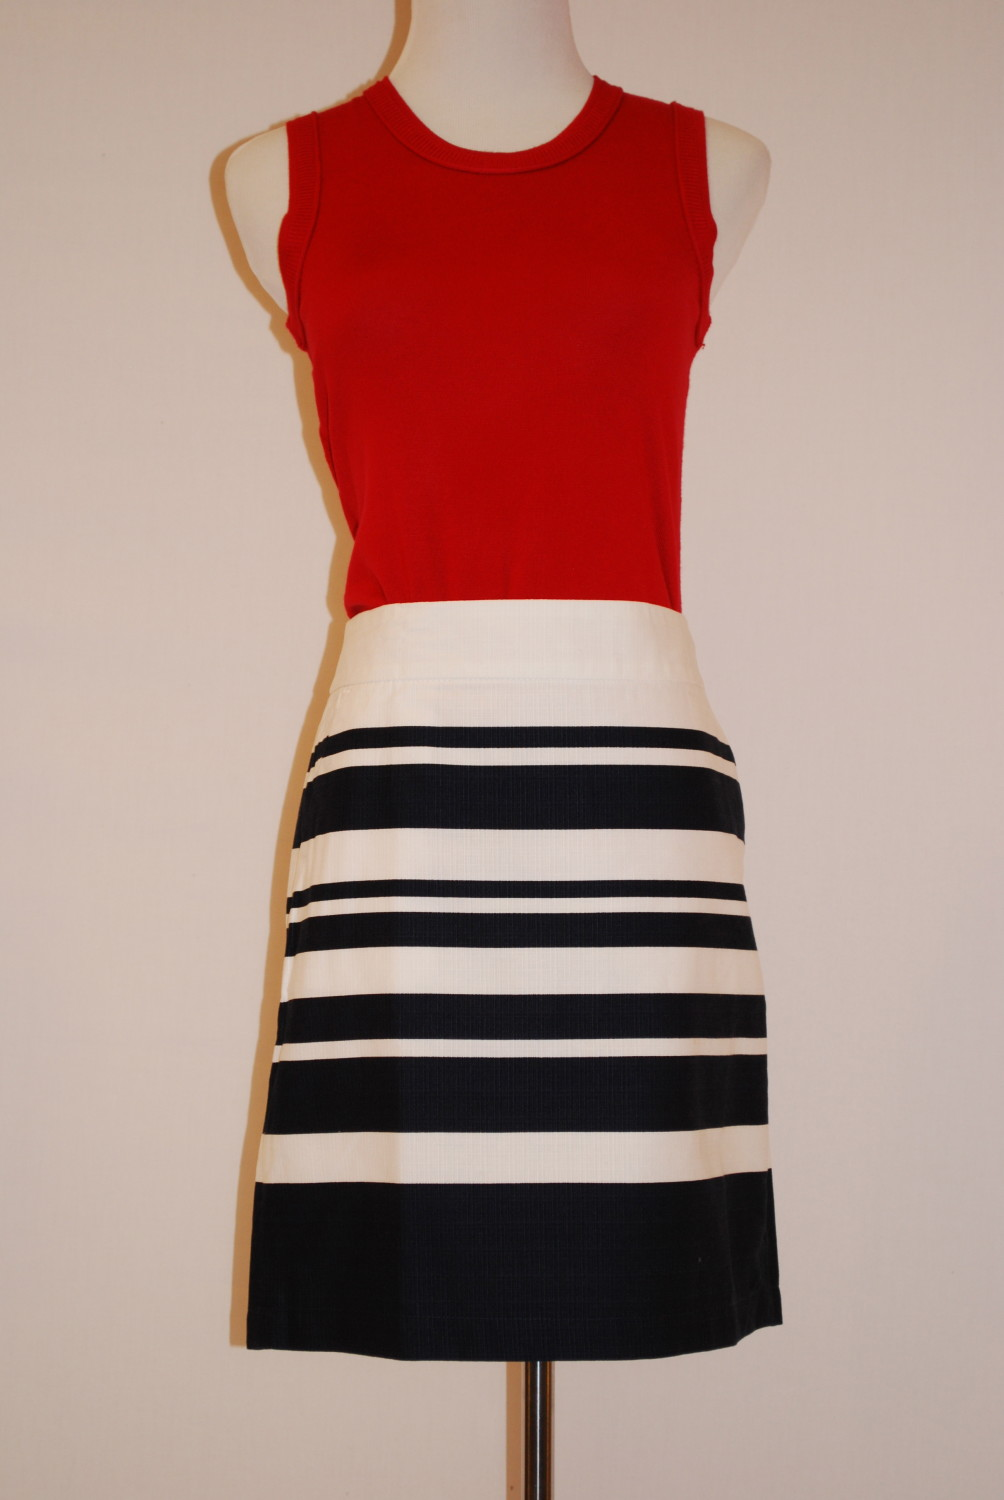 Tommy Hilfiger Skirt – Original Retail: $69.50, WHS: $15